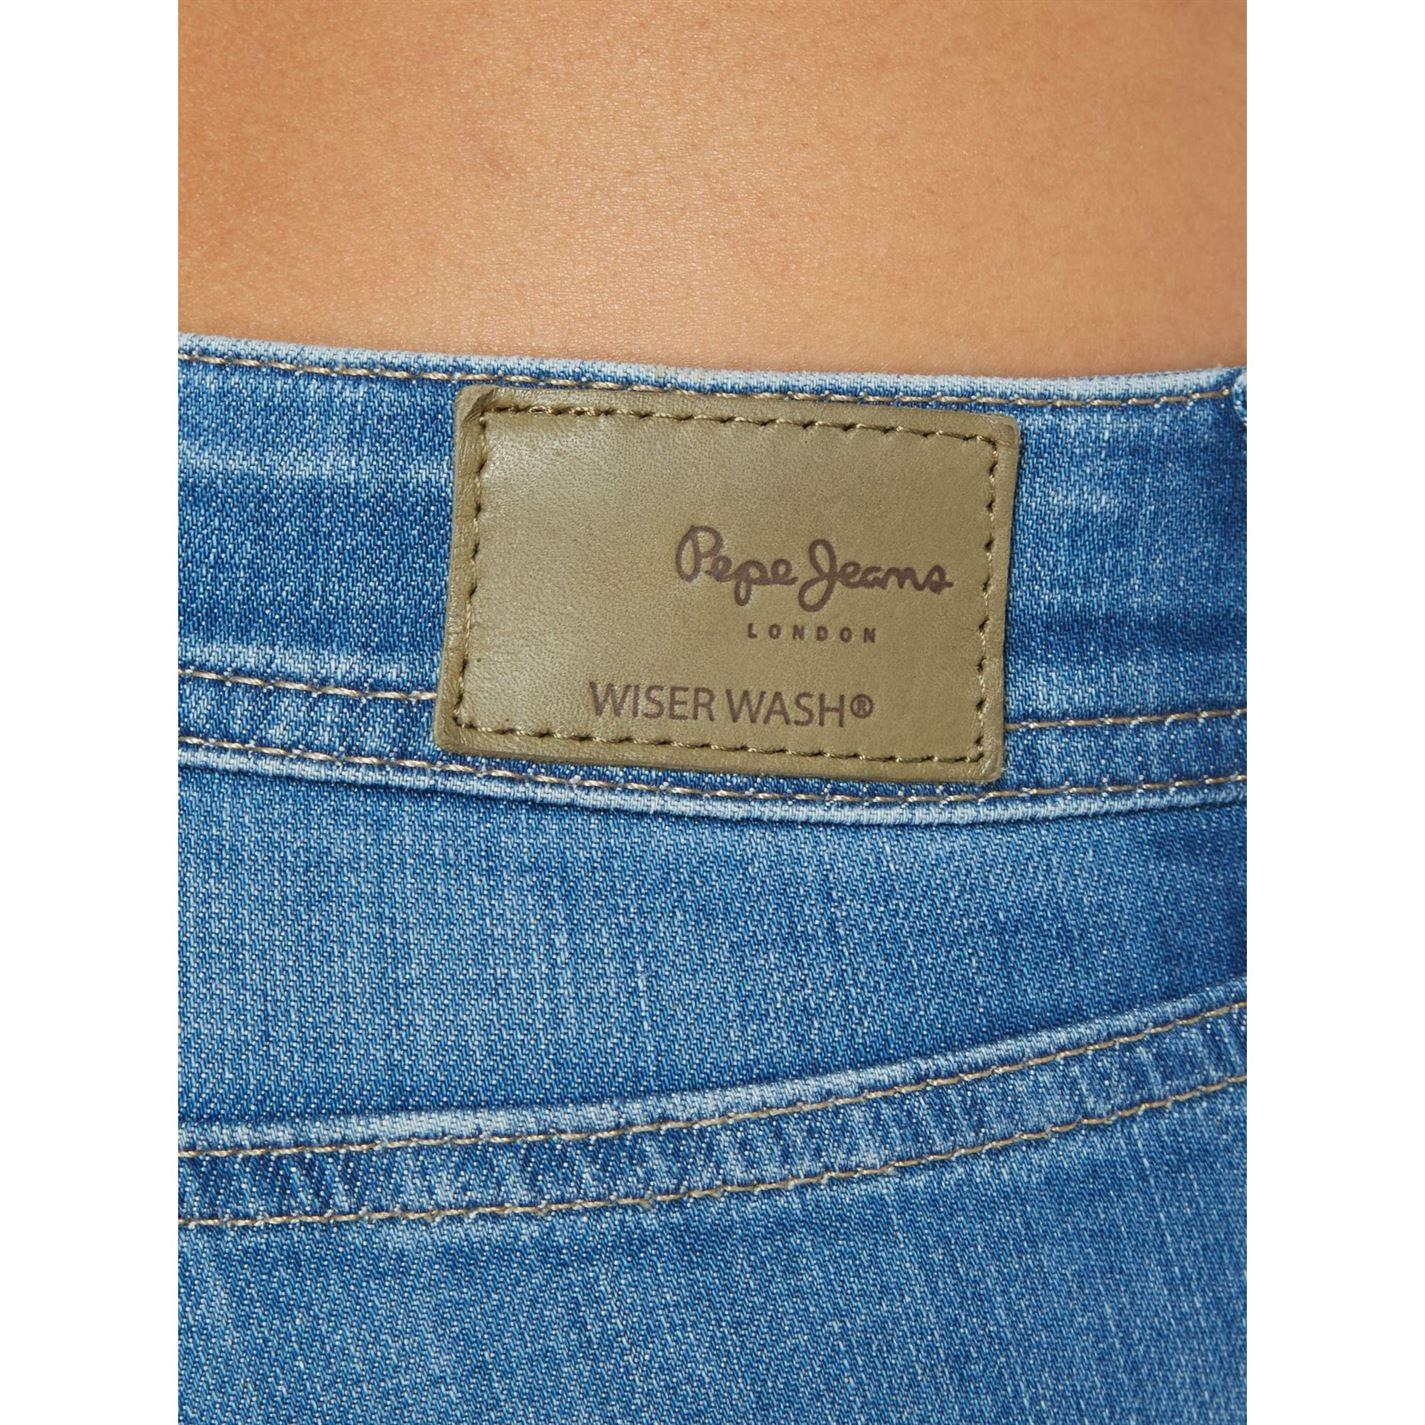 Pepe Jeans Denim Pixie Eco Jeans in Denim (Blue)